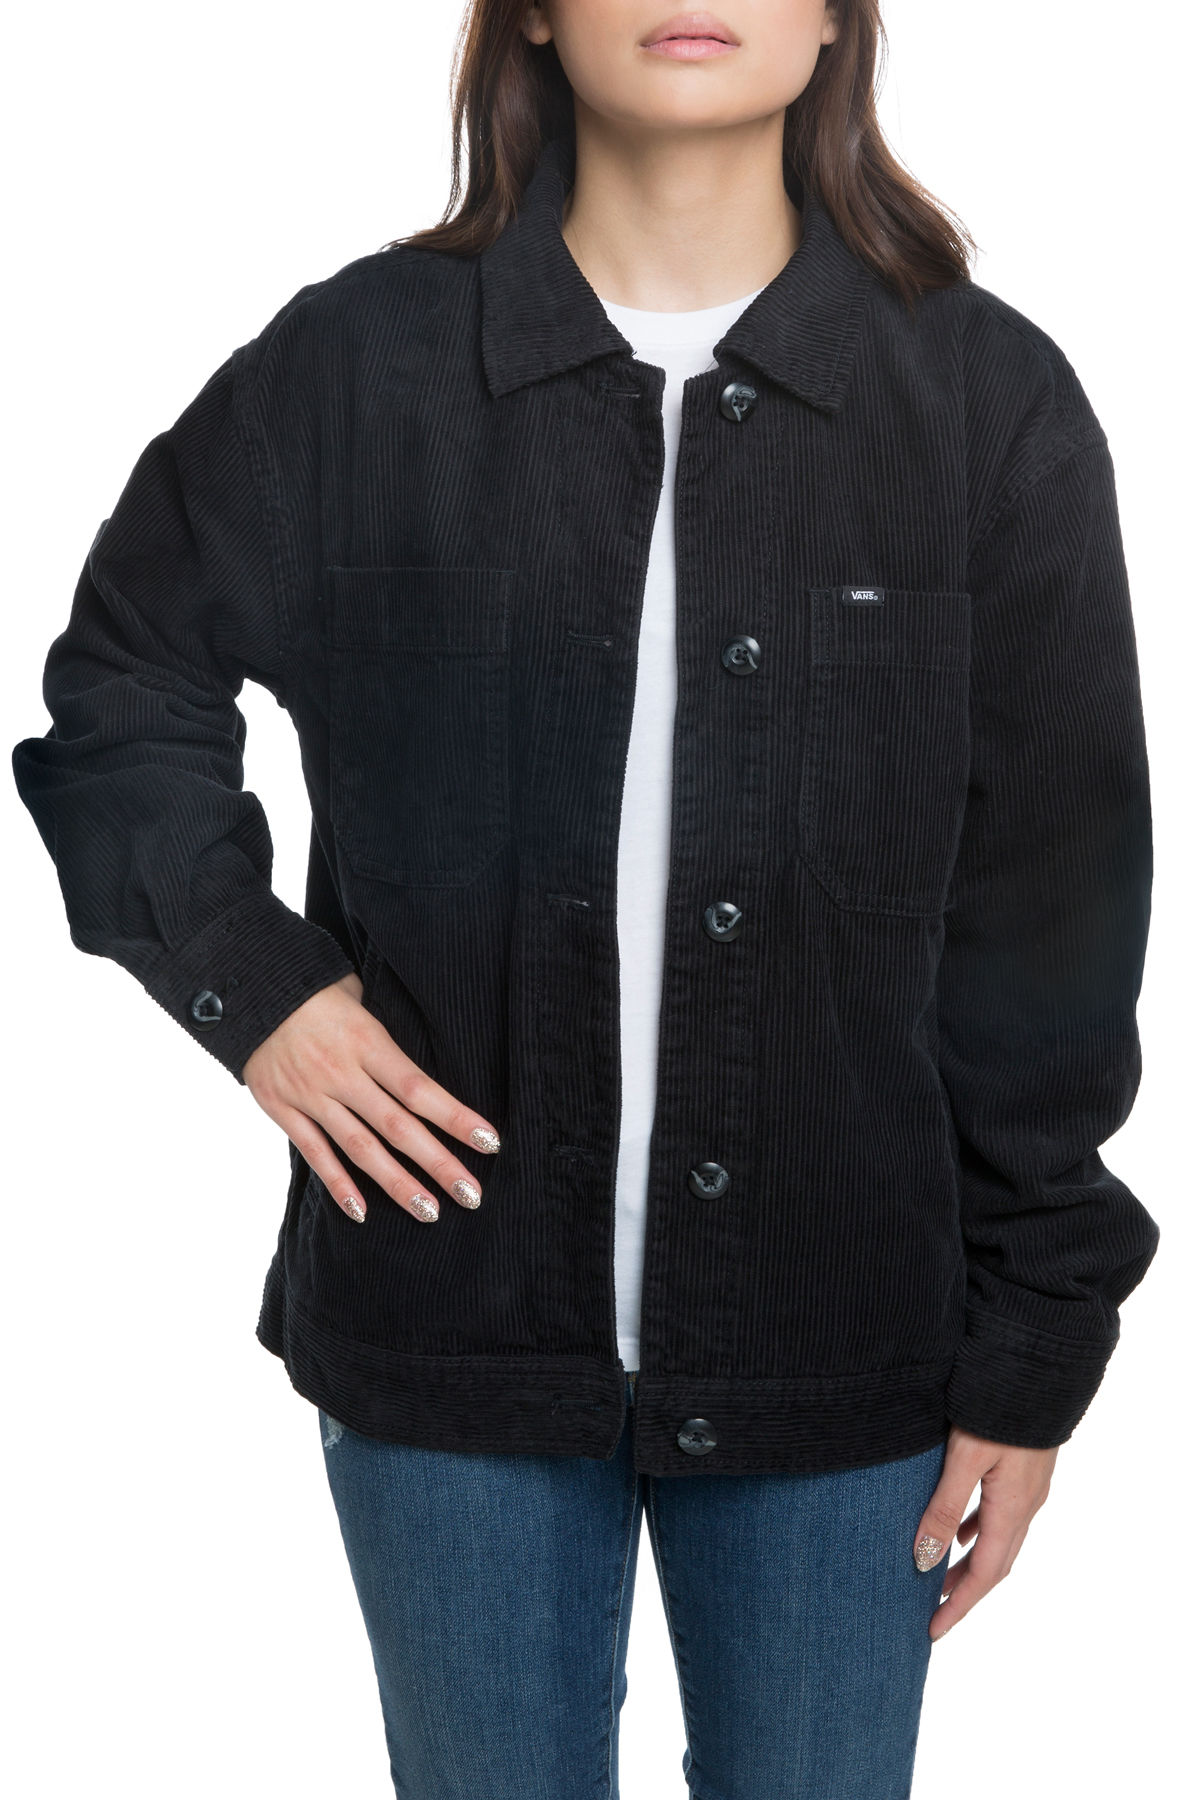 The Summit Jacket in Black